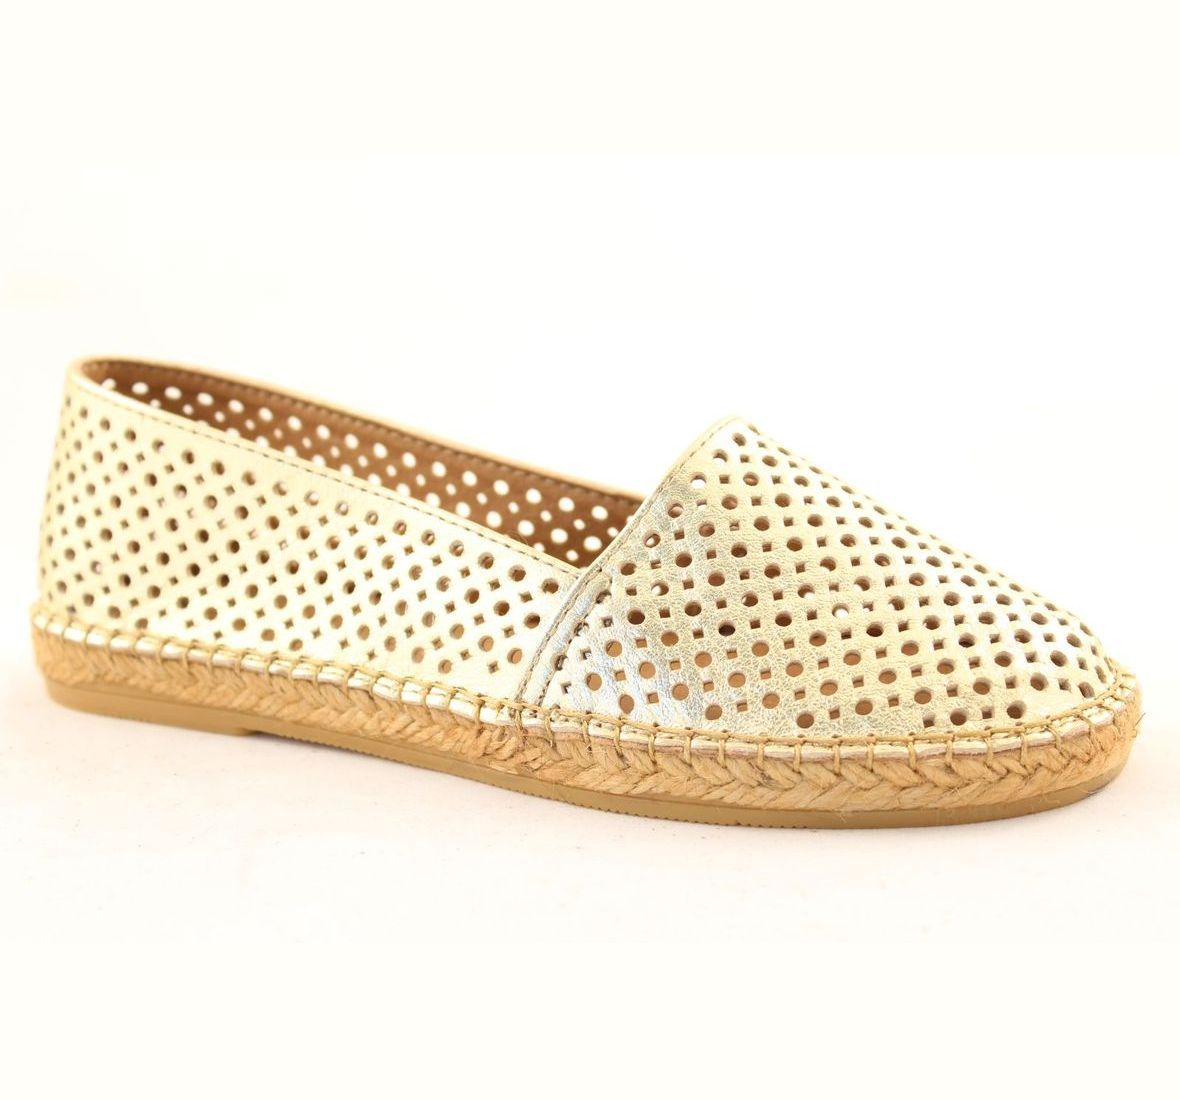 Cheap Pay With Paypal New Arrival FOOTWEAR - Espadrilles Scapa Fast Delivery Sale Online Outlet Low Shipping Shopping NdQx0p7D